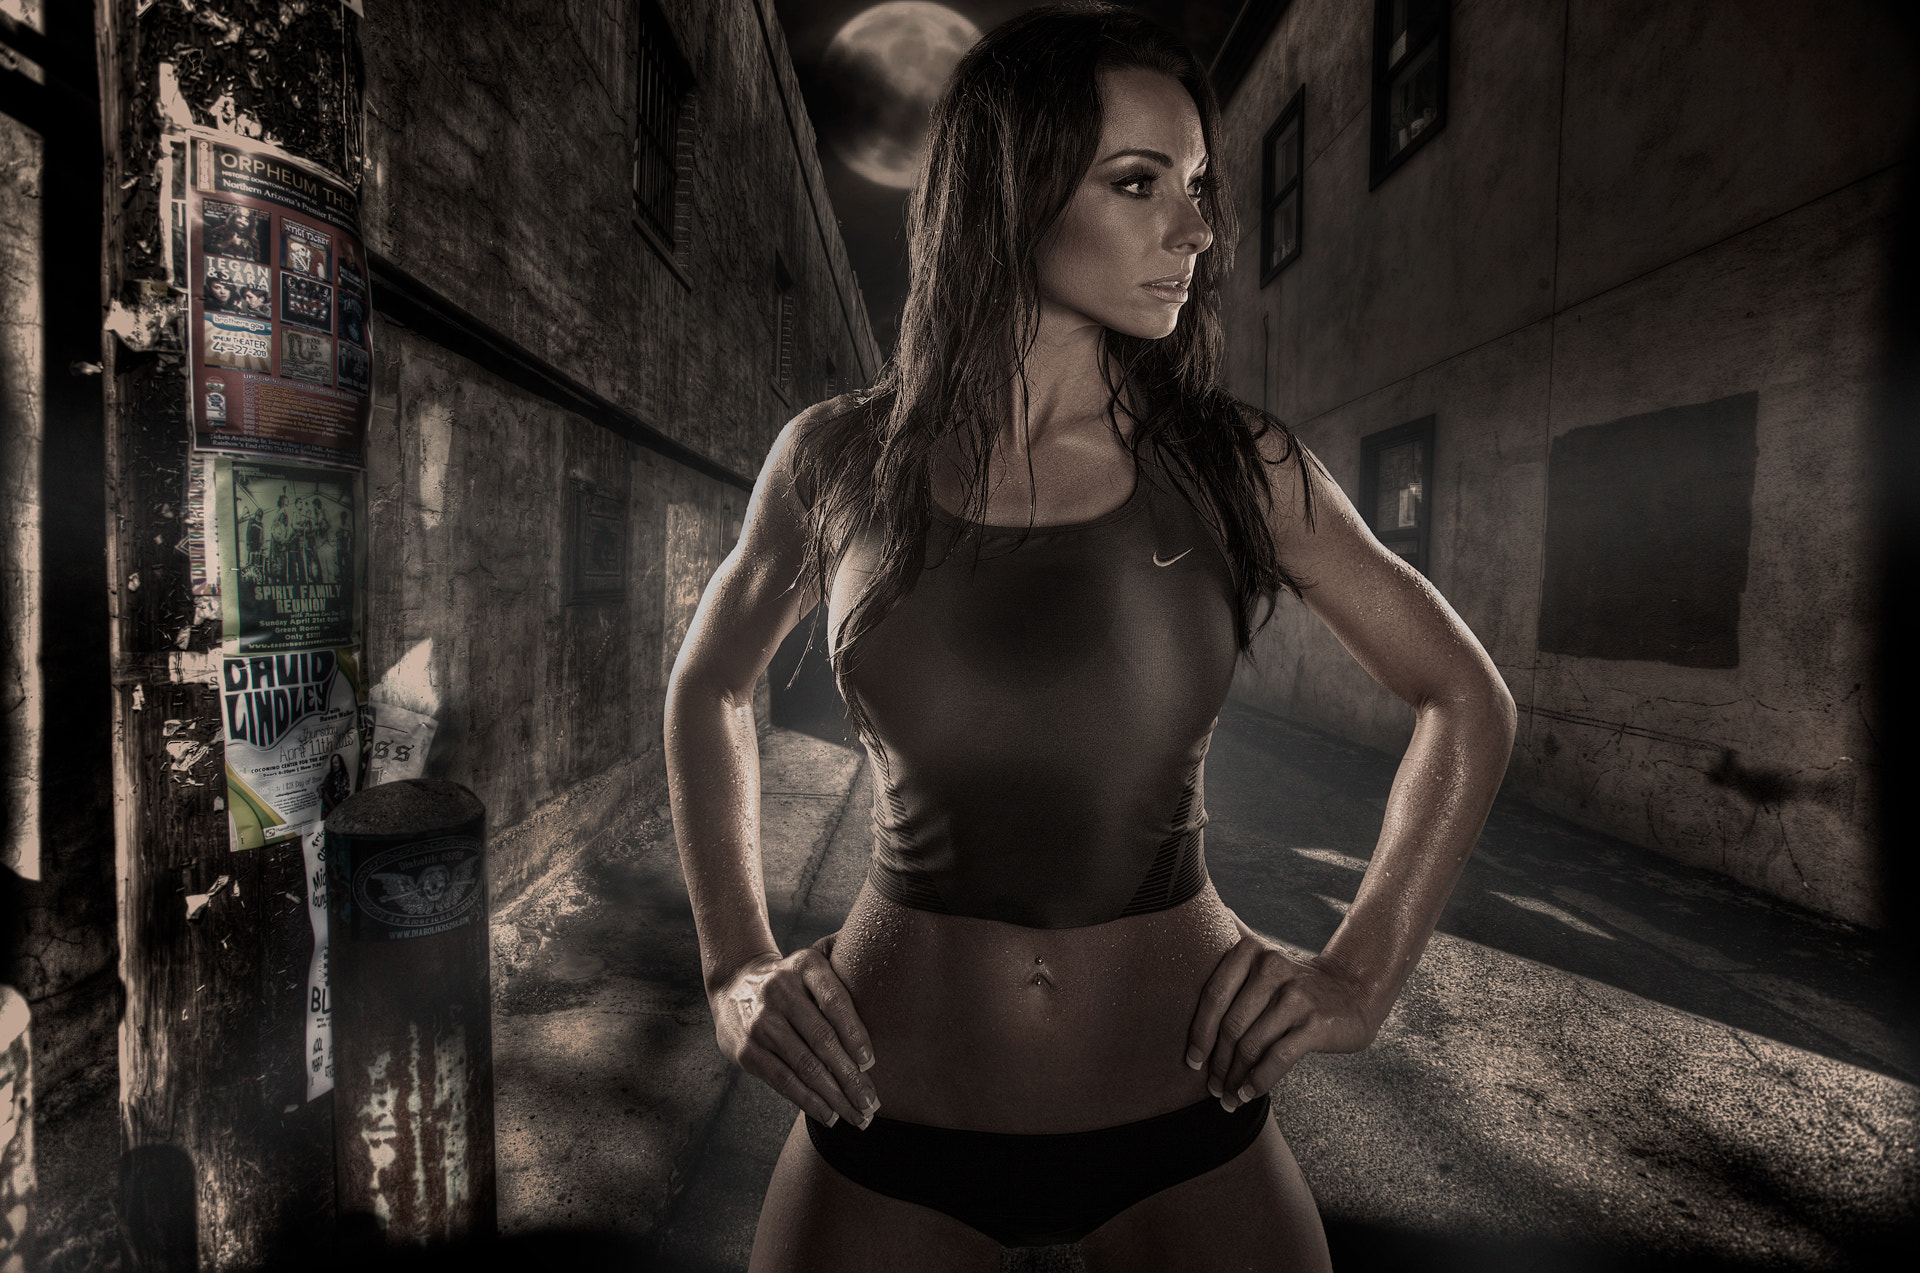 Photograph Alley Fitness by Tony Mandarich on 500px